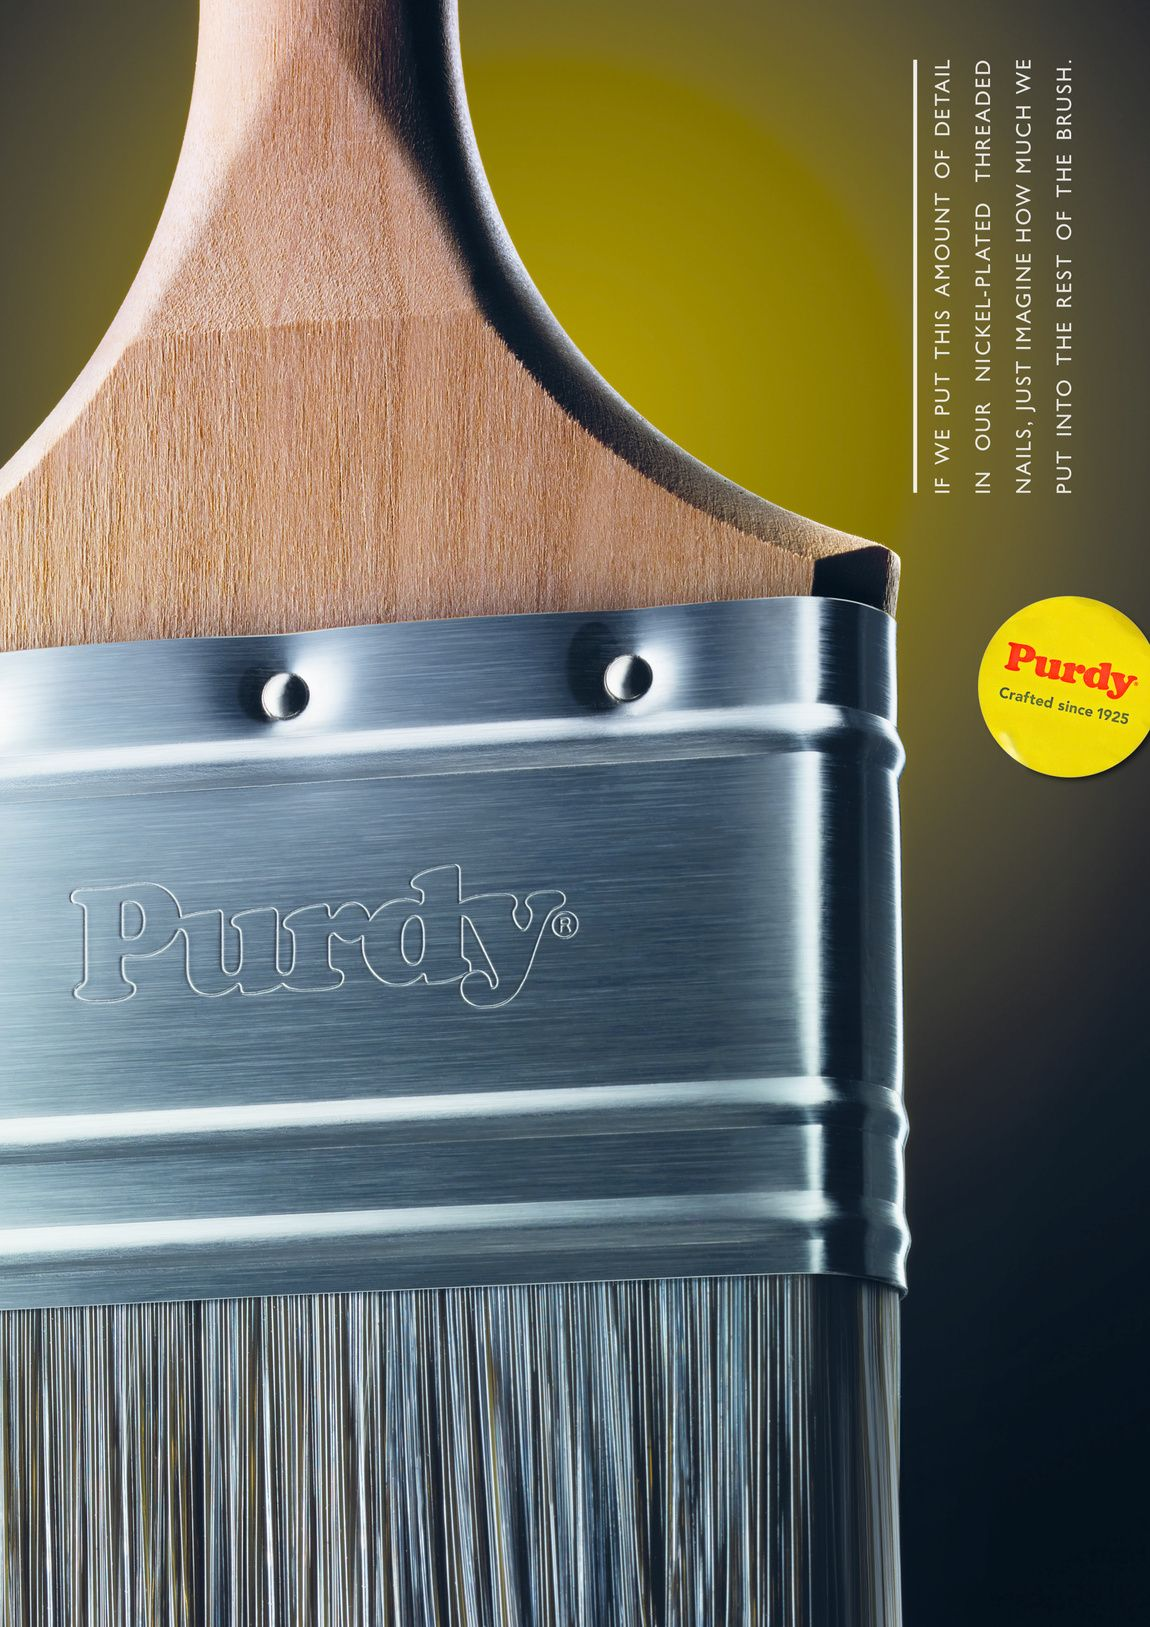 Read more: https://www.luerzersarchive.com/en/magazine/print-detail/purdy-61520.html Purdy If we put this amount of detail in our nickel-plated threaded nails, just imagine how much we put into the rest of the brush. Campaign for Purdy brand professional paintbrushes. Tags: BJL, Manchester,Bruce Anderson,Richard Pearson,Karl Stones,Ryan Griffiths,Purdy,Katie Bradshaw